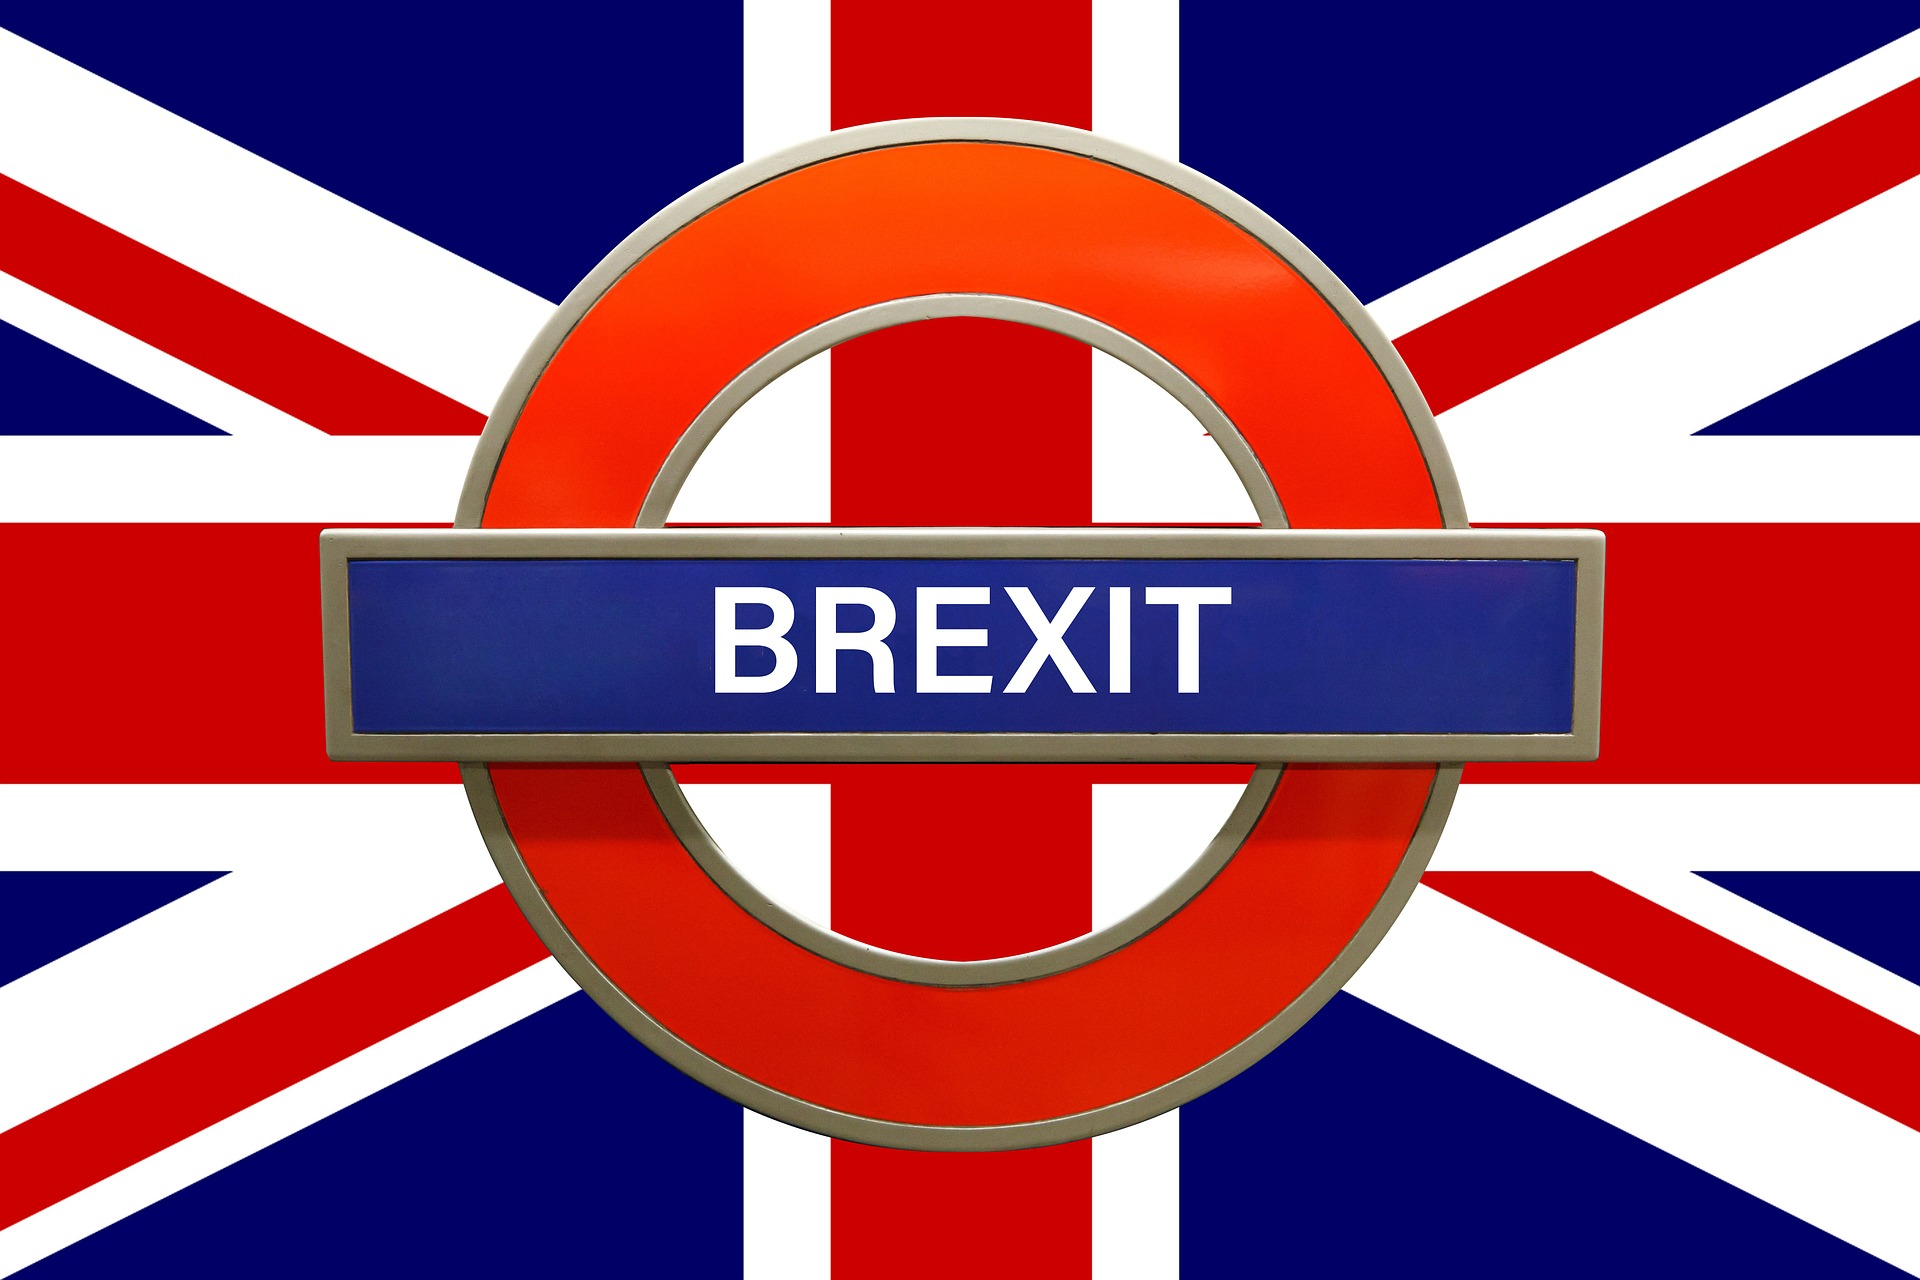 3-years after the Brexit referendum – what has happened?